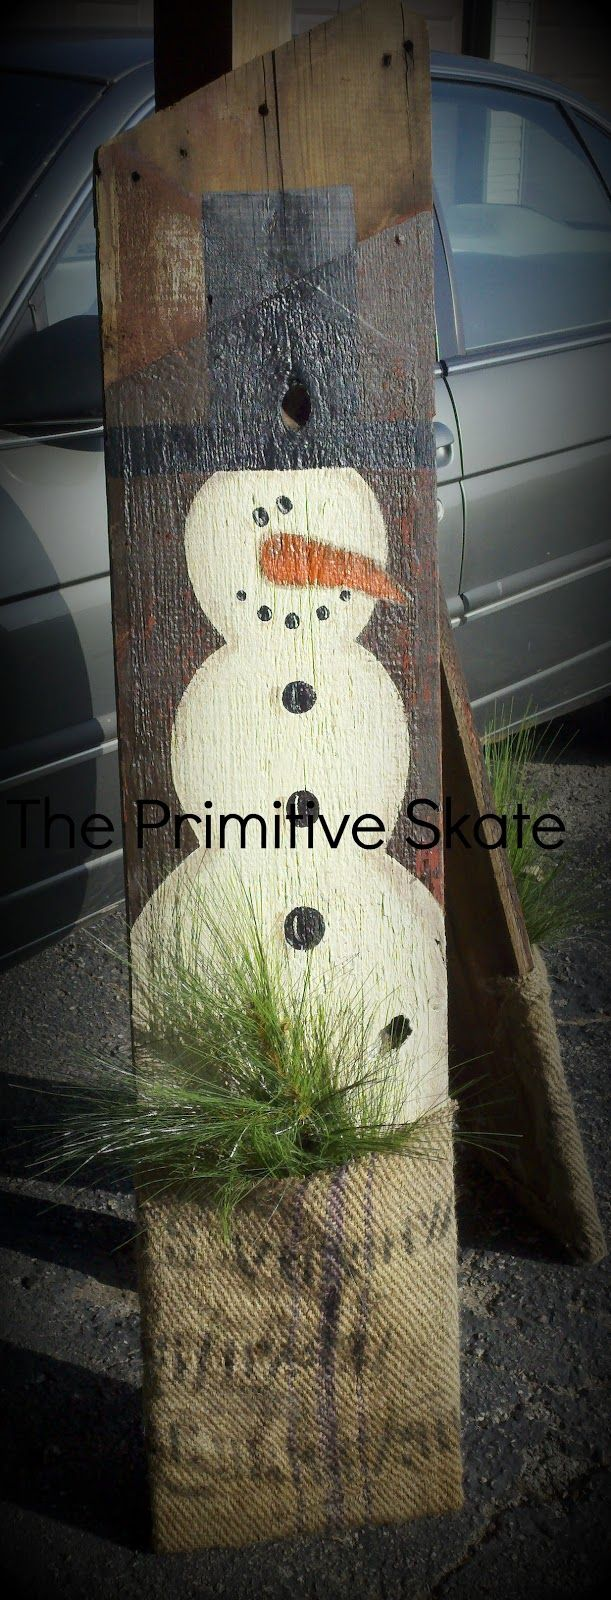 Primitive christmas ideas to make - Diy Snowman Old Barn Board Burlap Bag Repurposed Into A Primitive Snowman Decoration Paint A Snowman Onto The Piece Of Barn Wood Cut A Burlap Bag In